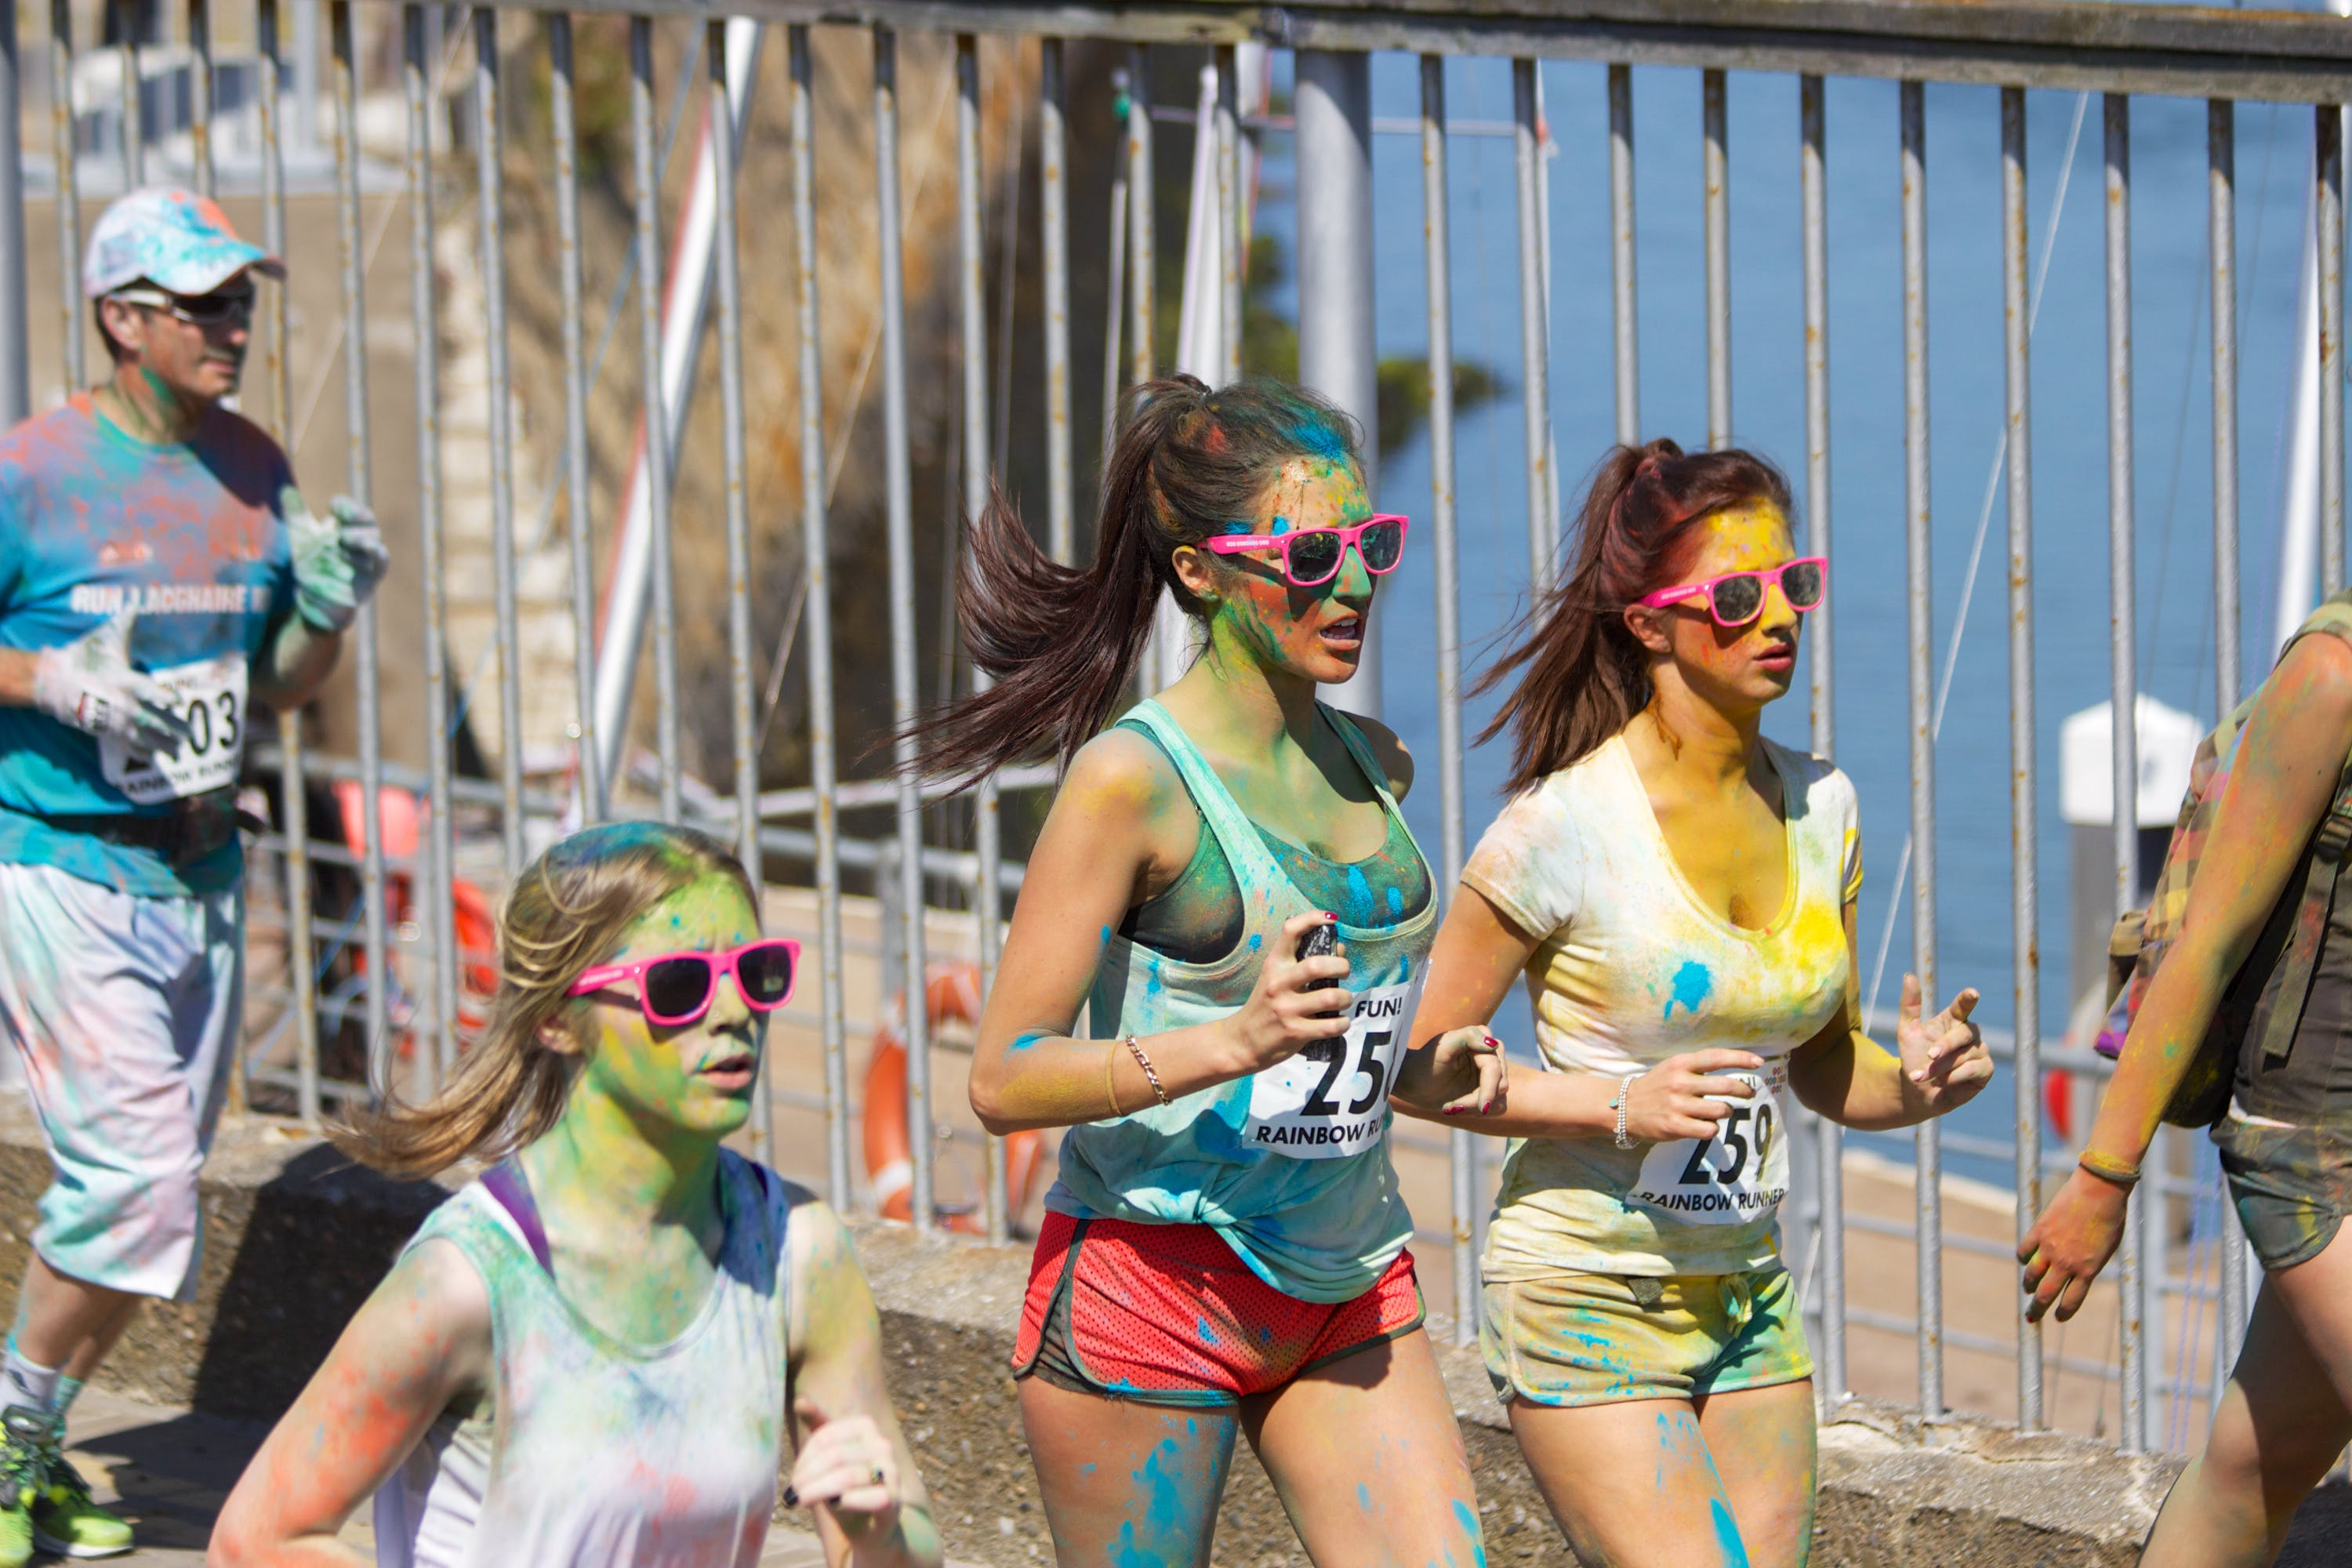 People Running With Paint Stains